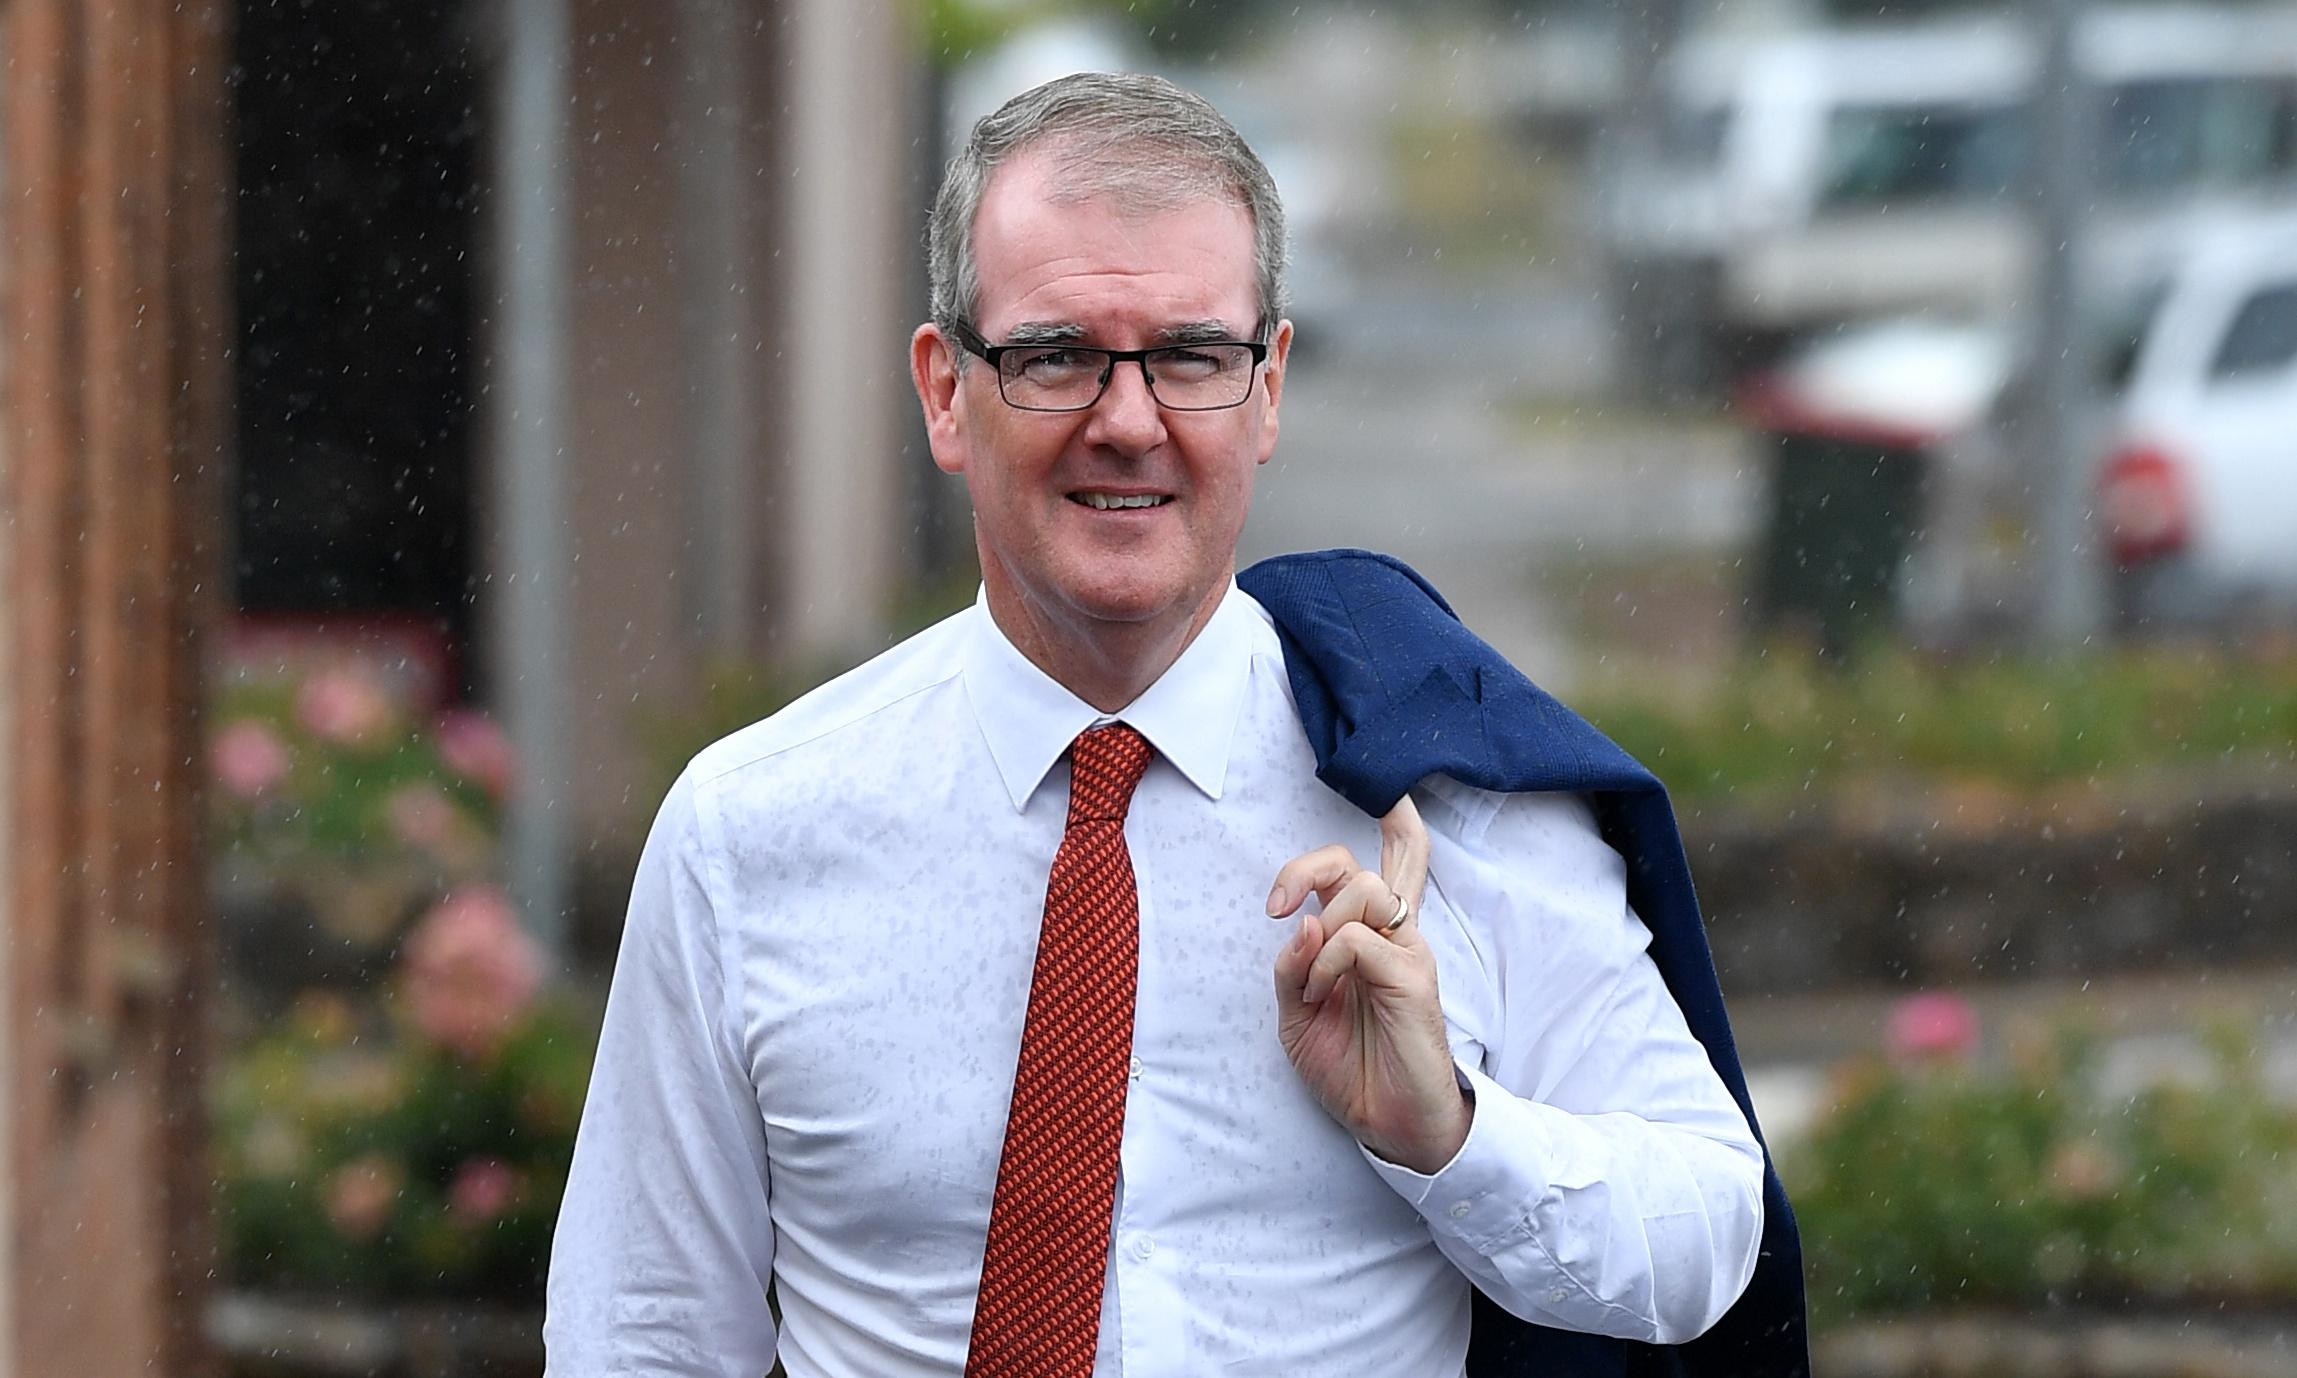 Michael Daley claims Asian workers taking young people's jobs in Sydney